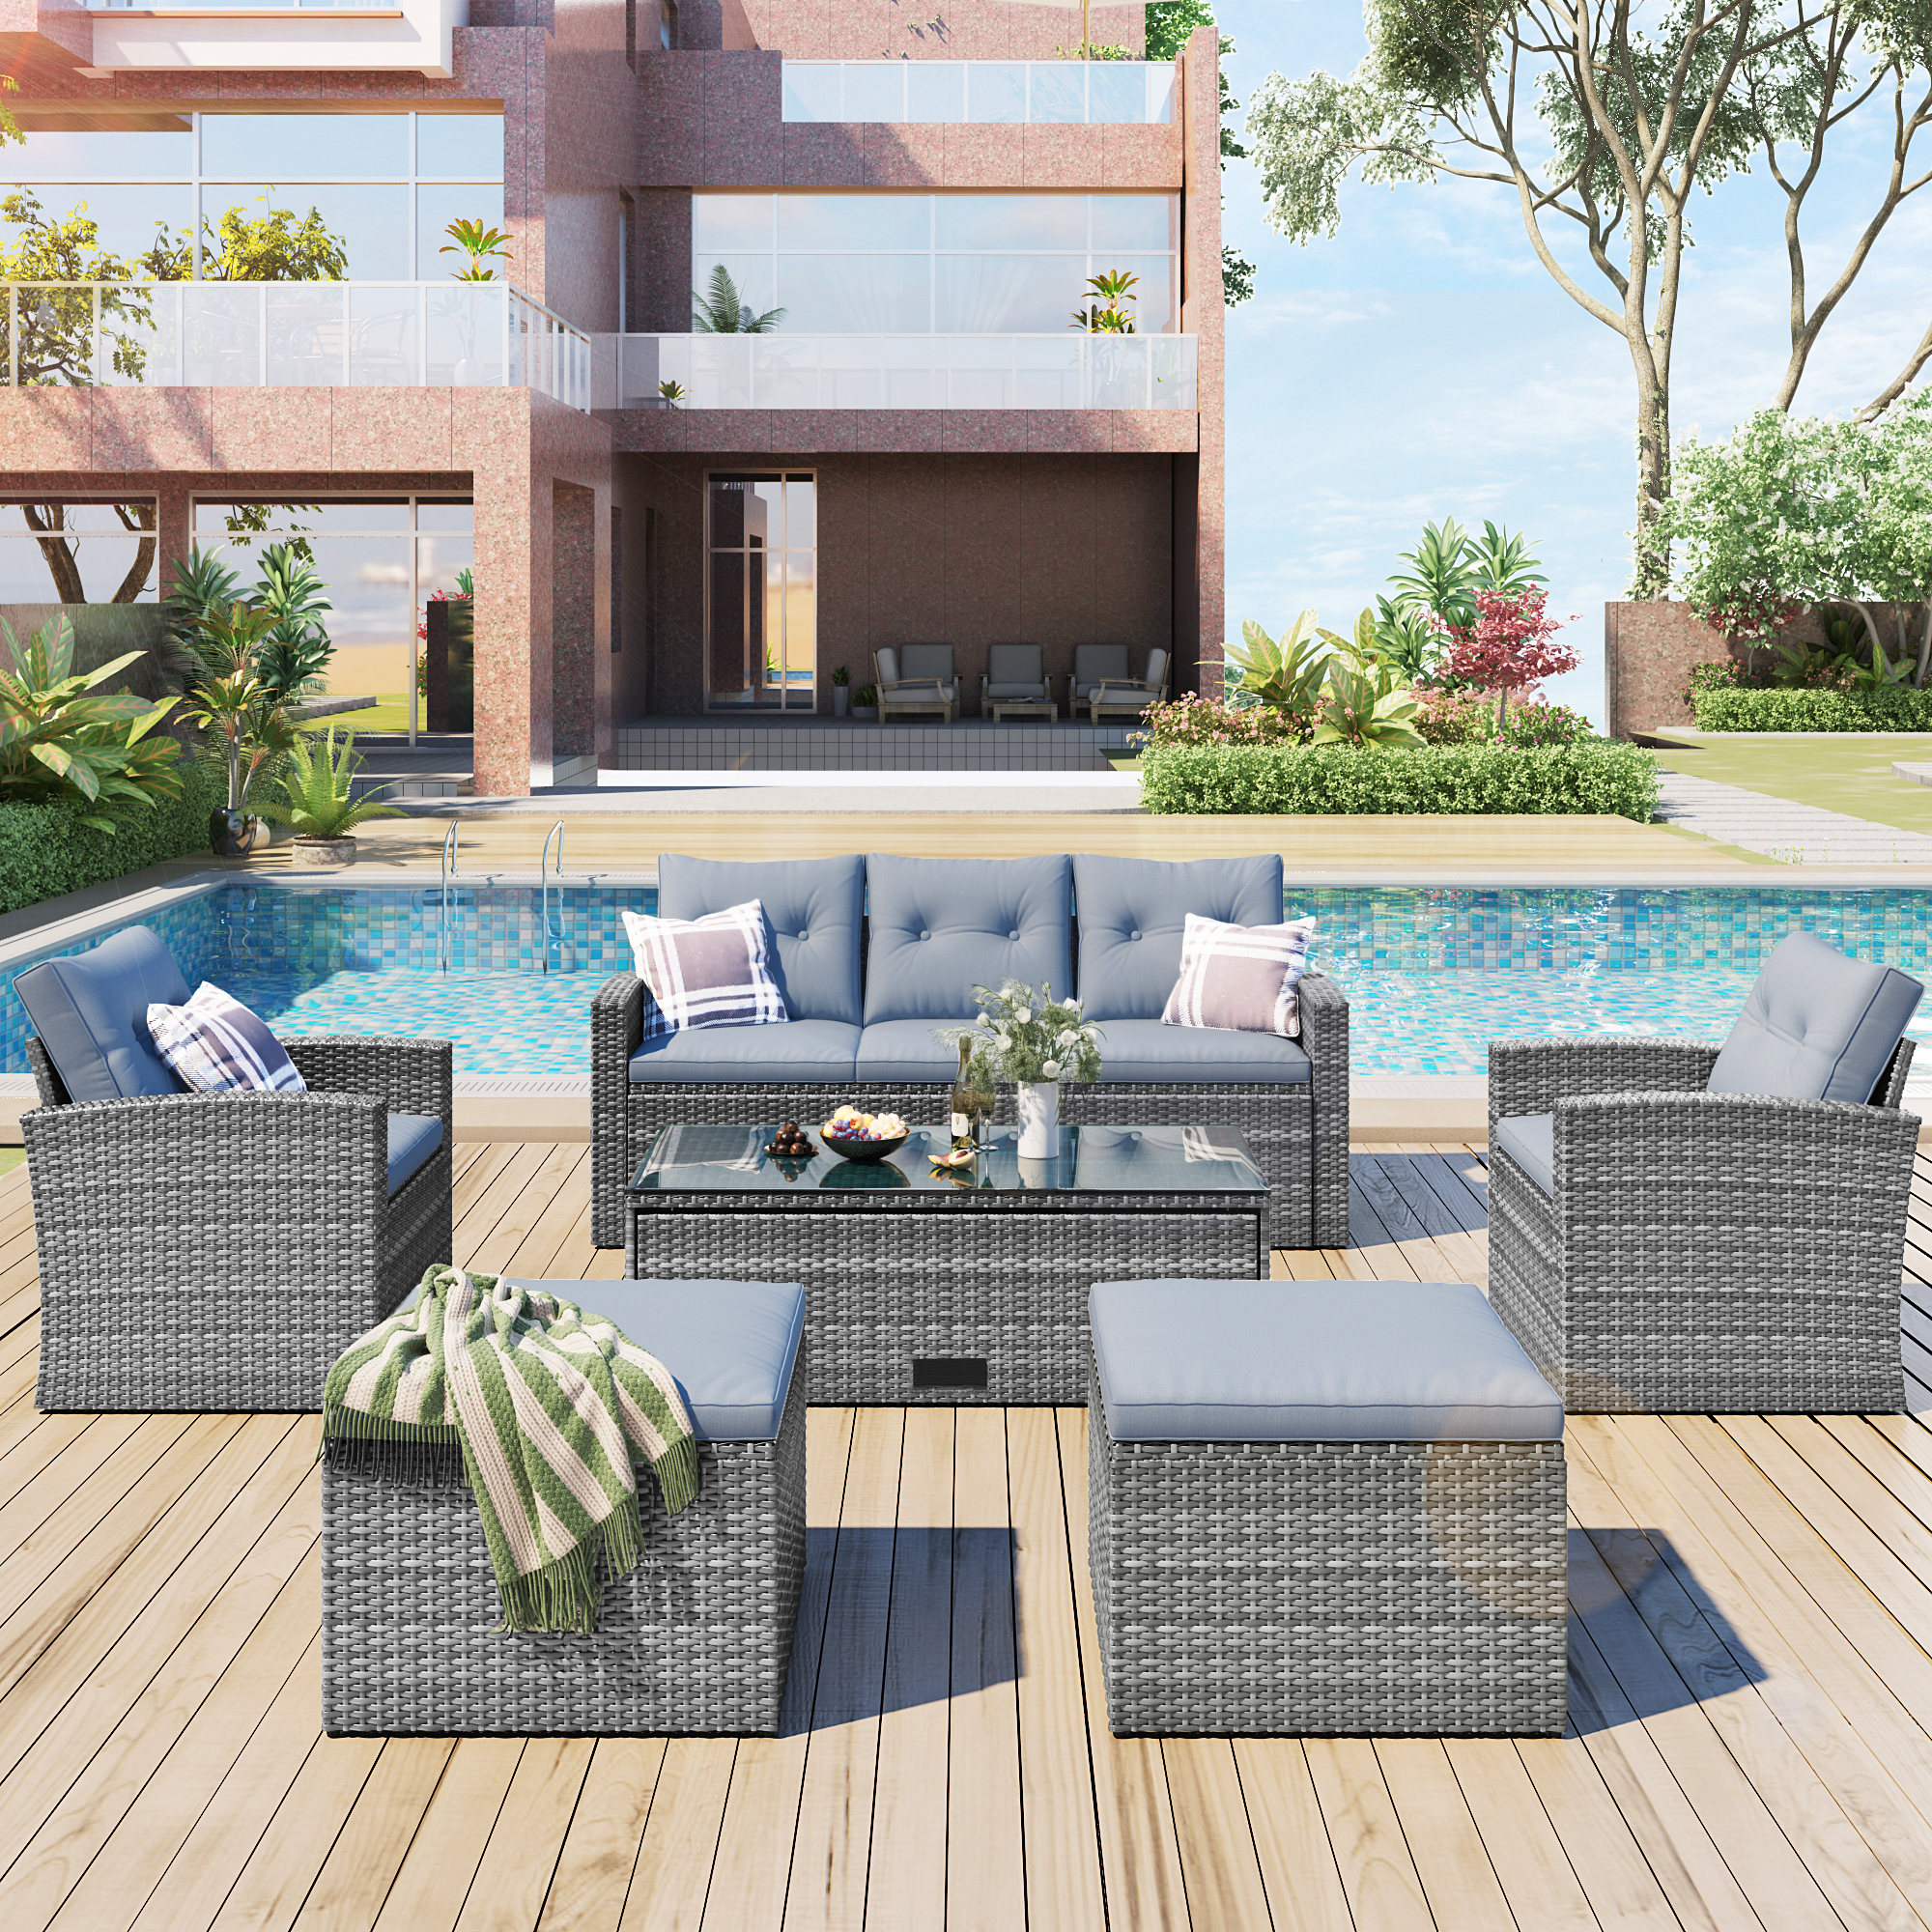 6-piece All-weather Wicker Pe Rattan Patio Outdoor Dining Conversation Sectional Set With Coffee Table, Wicker Sofas, Ottomans,  Removable Cushions Dark Grey Wicker, Light Grey Cushion